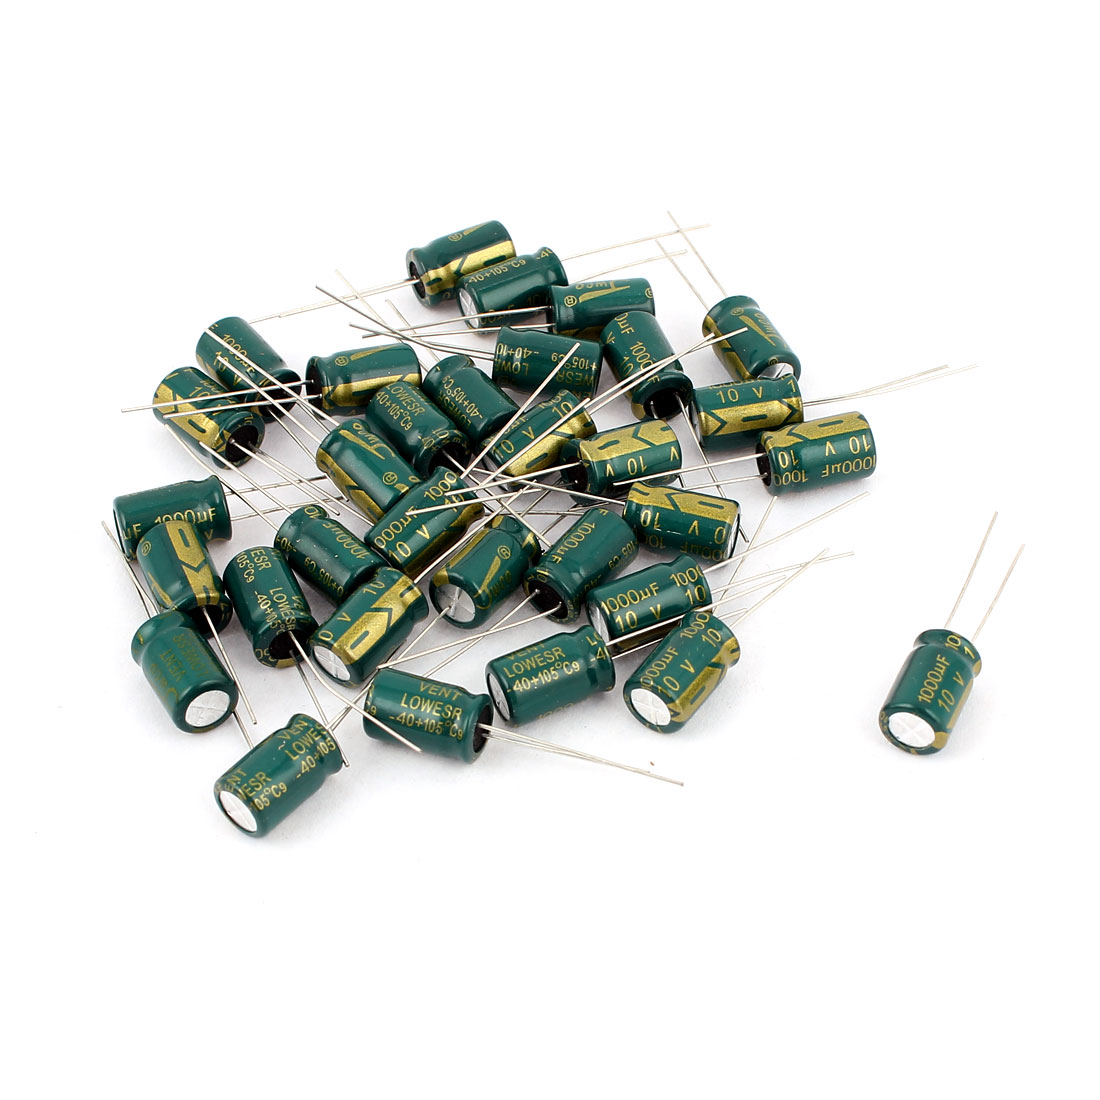 30pcs 8 x 12mm Cylindrical Radial Lead Electrolytic Capacitor 105C 1000uF 10V